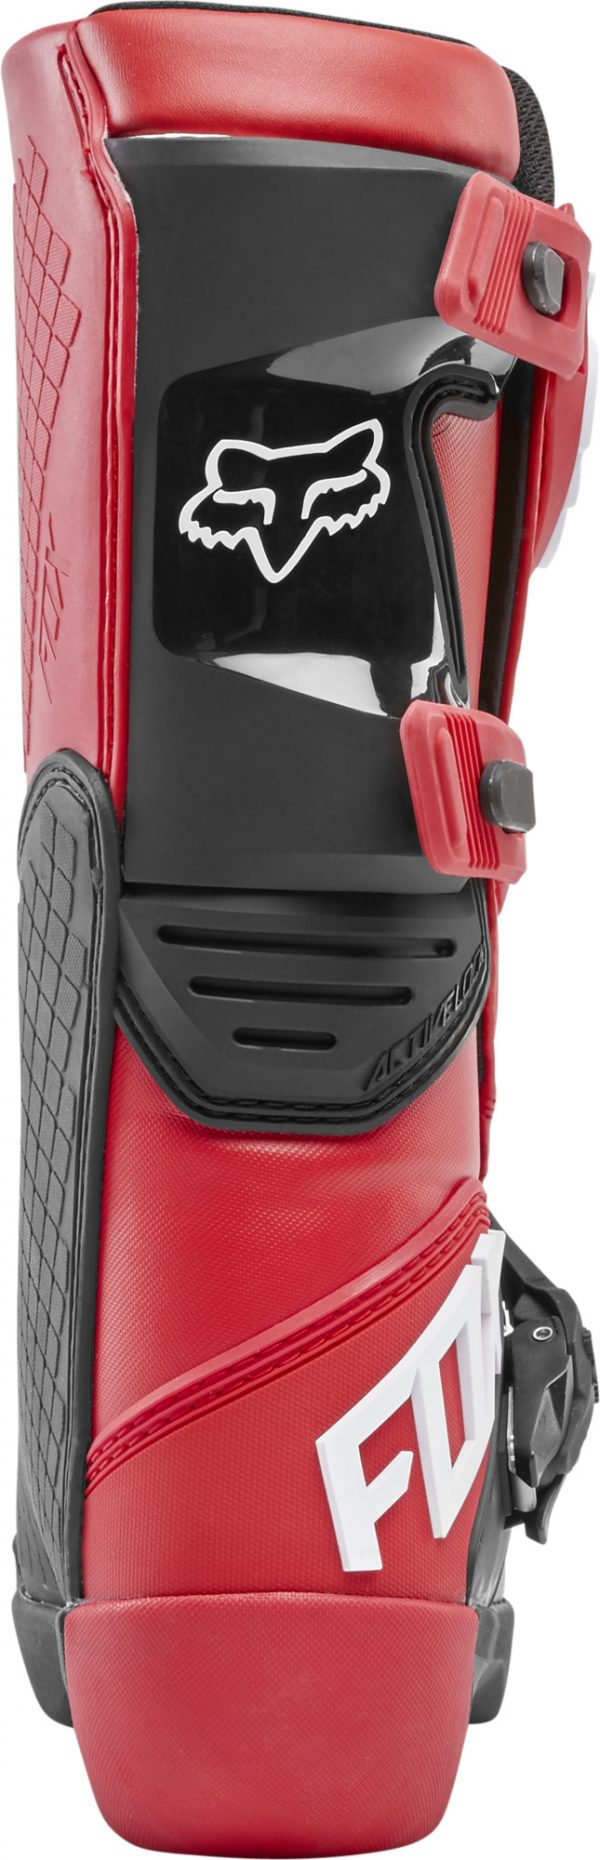 2020 Fox Comp YOUTH Boot Flame Red - 24014 122 4